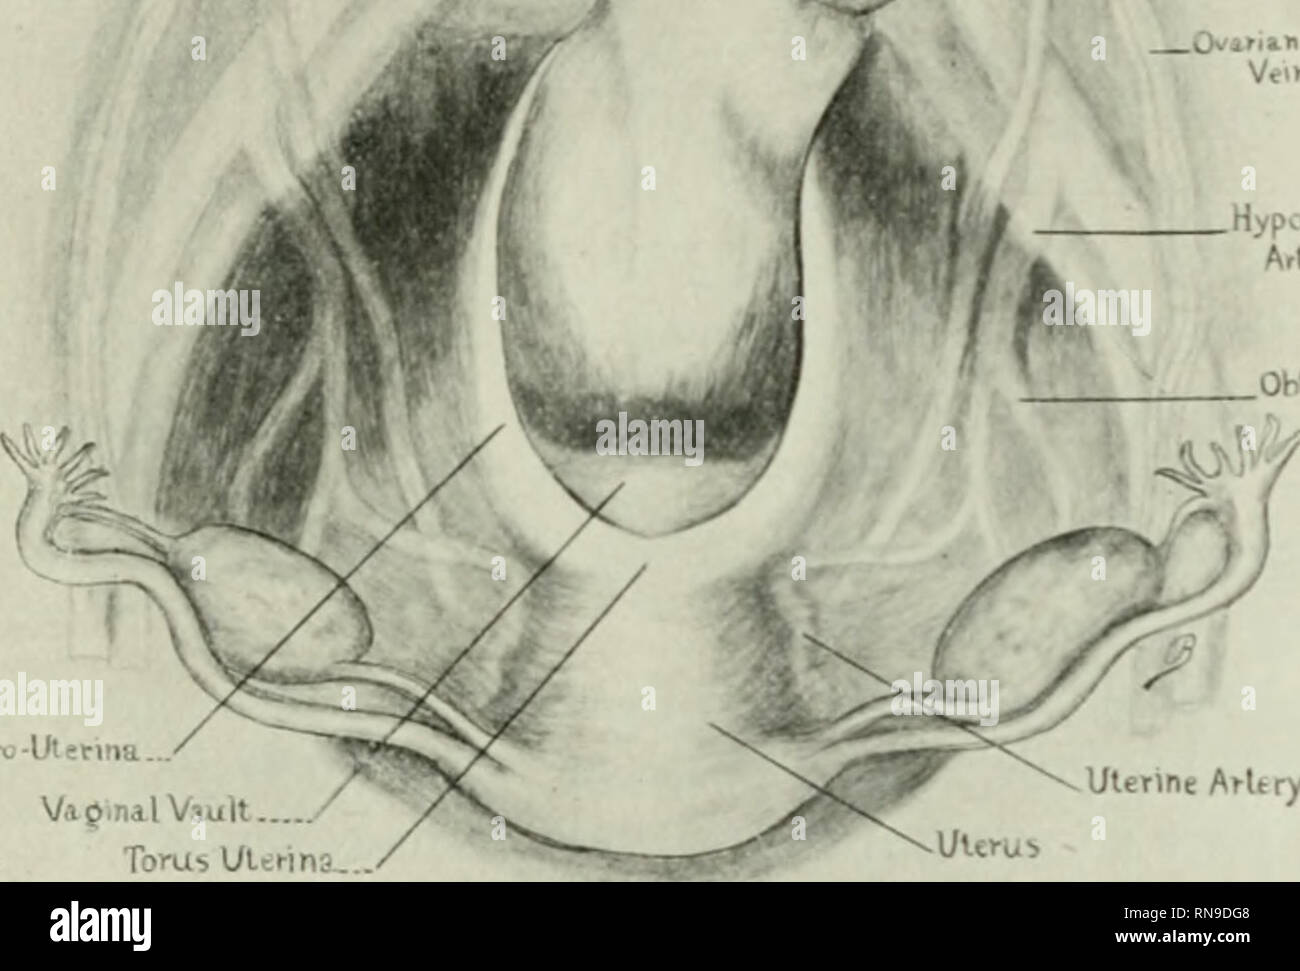 . The anatomical record. Anatomy; Anatomy. THE SACRO-UTERIXE LIGAMENTS 5 Morris (20) calls the posterior peritoneal folds of the uterus, 'the recto-uterine ligaments,' and states that they become continuous with the peritoneal investment of the second part of the rectmn, and that between their layers lie the utero-sacral ligaments, the latter being flat fibro-muscular bands, extending from the highest part of the cer- vix uteri, where they are more or less continuous with the uterine fibers in the recto-uterine peritoneal folds, to the sides of the sacrum N f. VapinalViult TomsUlsi-ina. Ulenne - Stock Image